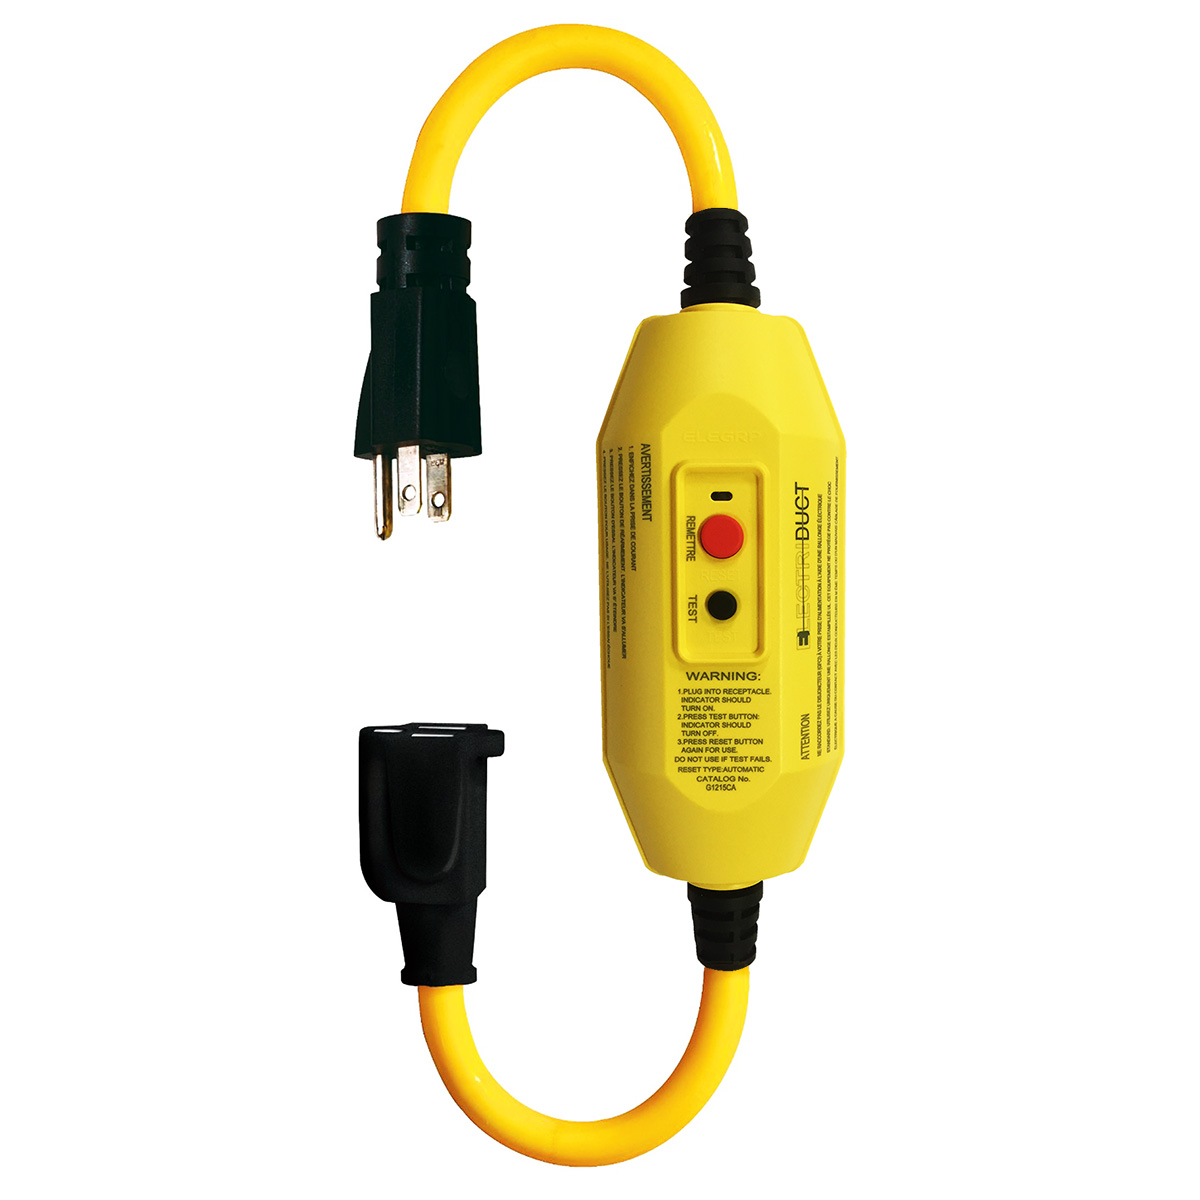 Gfci Oulets Power Extensions Shock Buster Ground Fault Circuit Interrupter Safety Outlet This Type Of In Line Portable Cords Electriduct